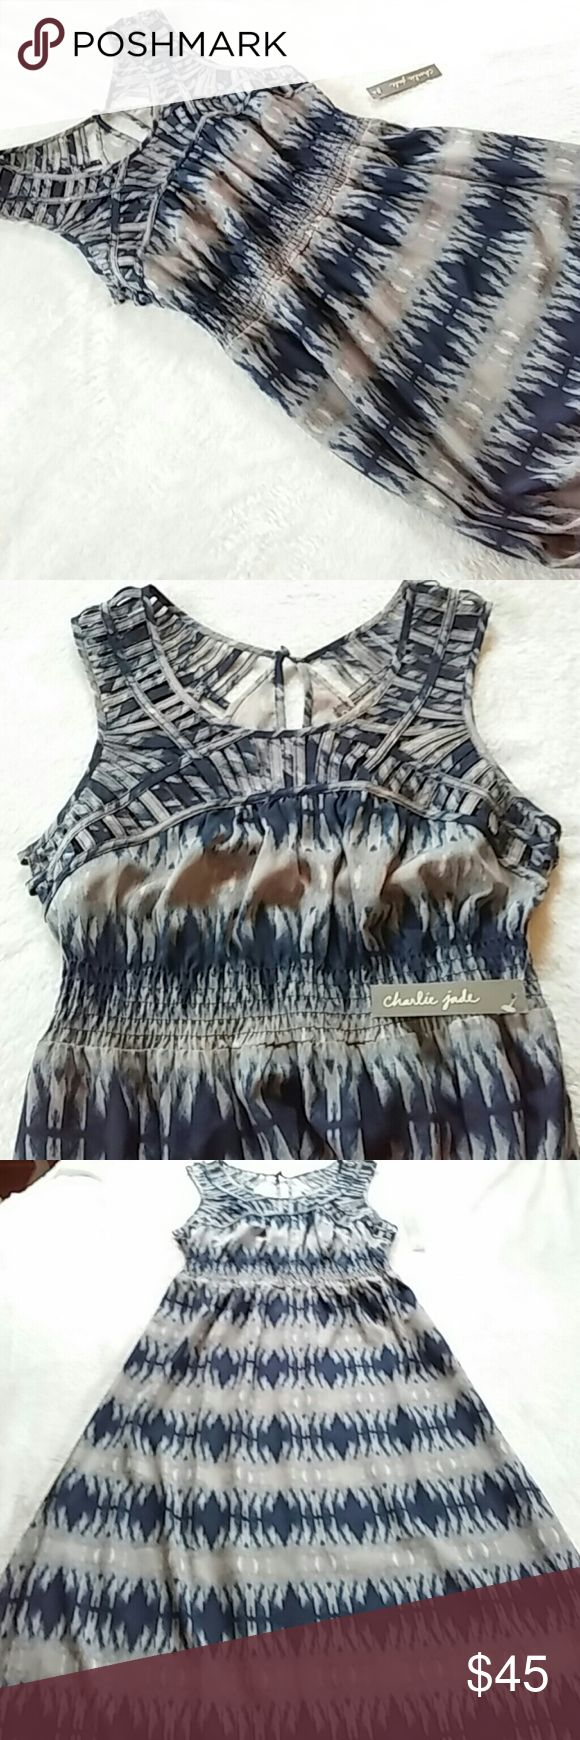 """🆕 Listing! NWT Charlie Jade Maxi Dress Gorgeous Charlie Jade maxi dress in shades of gray, cream and dark blue with an ikat print. Unique caged design on neckline, shoulders and around the back. Smocked waist. About 15.5"""" pit to pit. 13"""" waist not stretched. Stretches out to about 16"""". About 58"""" long. Extra button included. 100% polyester. Charlie Jade Dresses Maxi"""